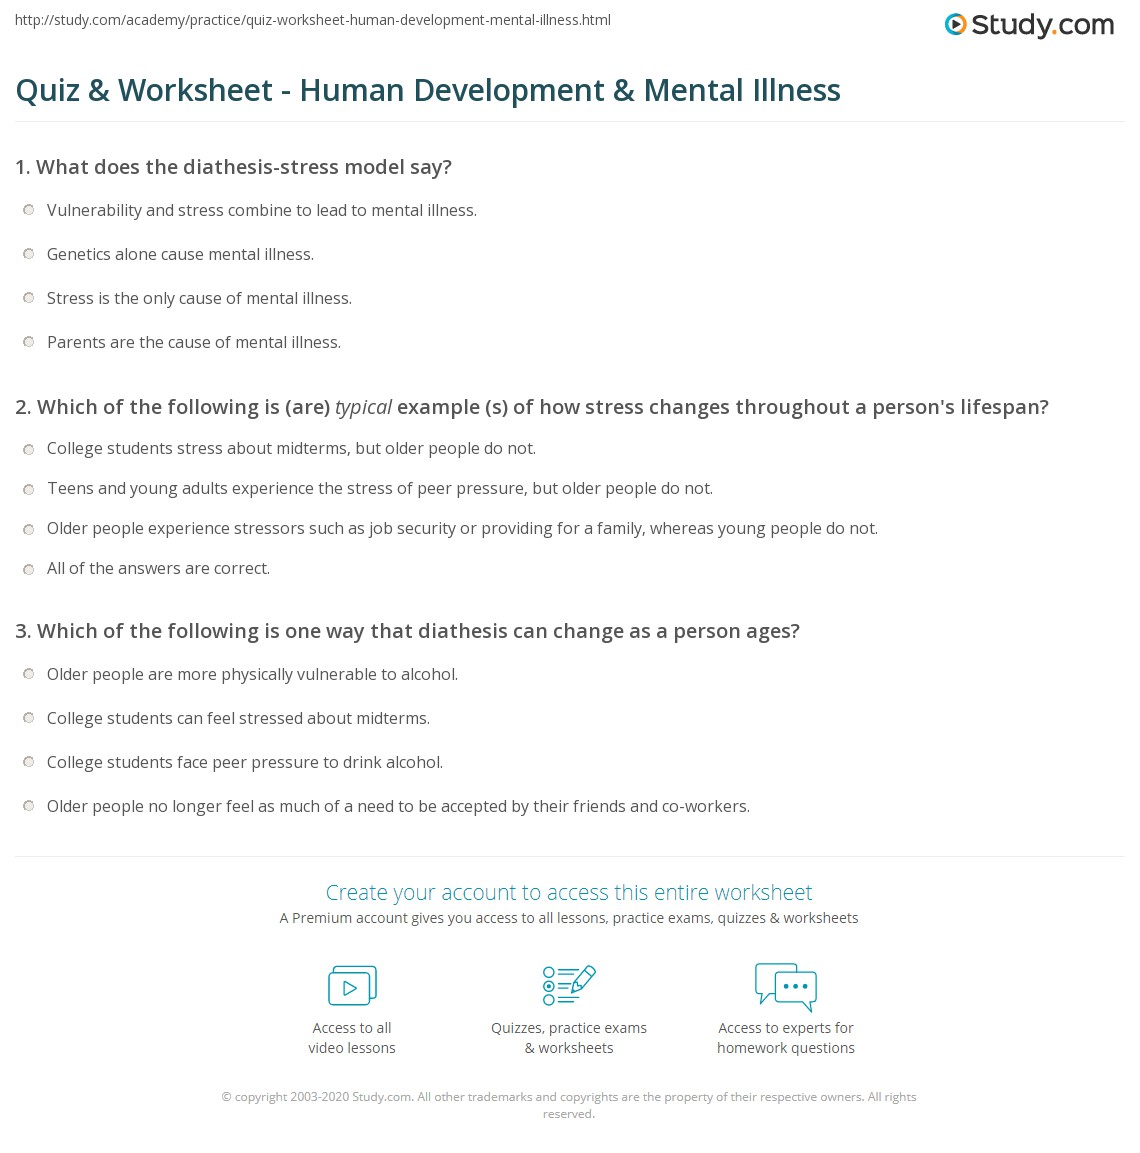 Printables Mental Illness Worksheets quiz worksheet human development mental illness study com print lifespan and vulnerability to worksheet